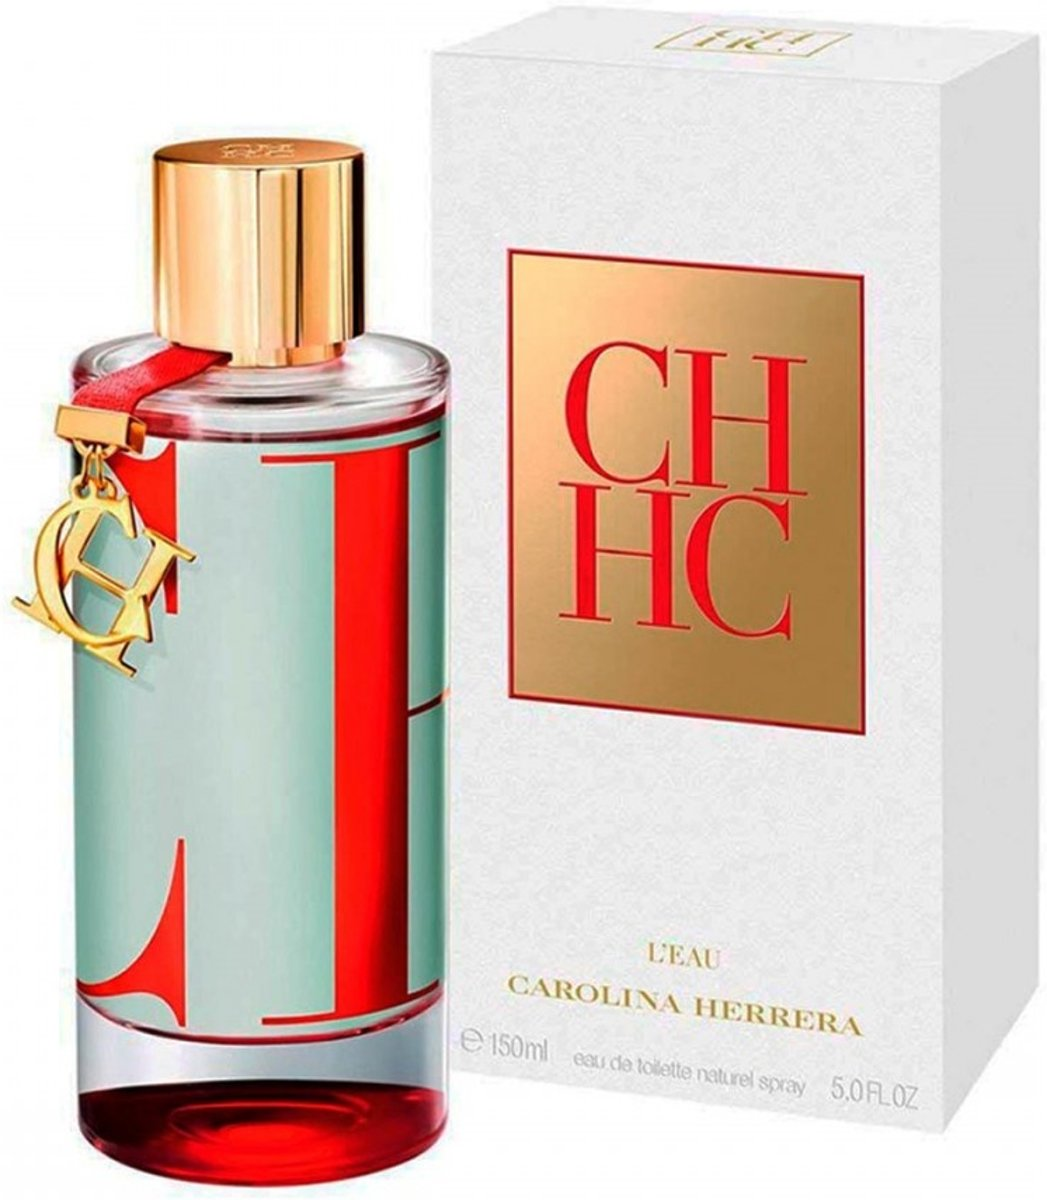 Carolina Herrera leau eau de toilette 150ml spray